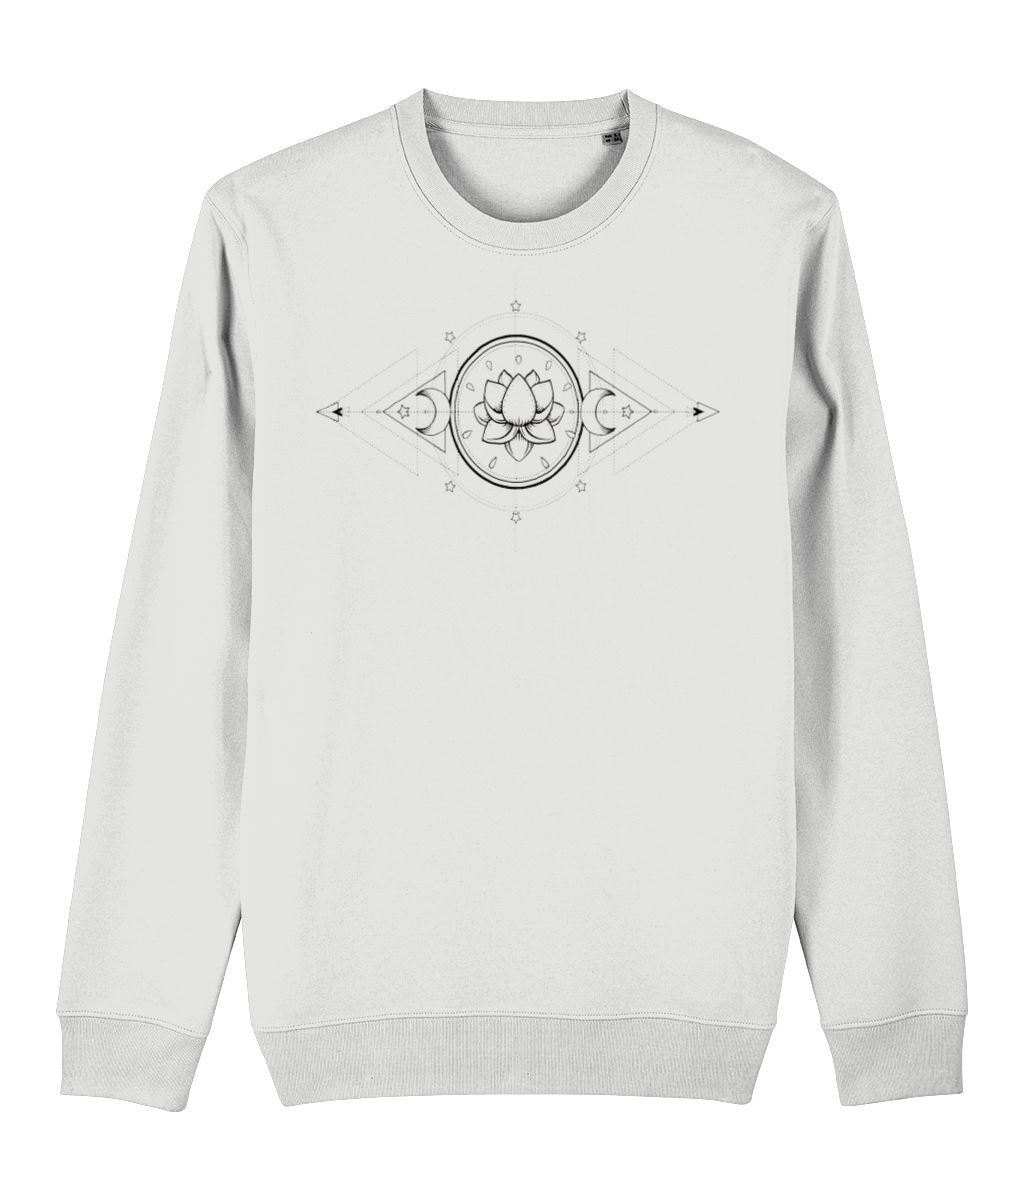 The Lotus & The Moon Sweatshirt Clothing IndianBelieves White X-Small